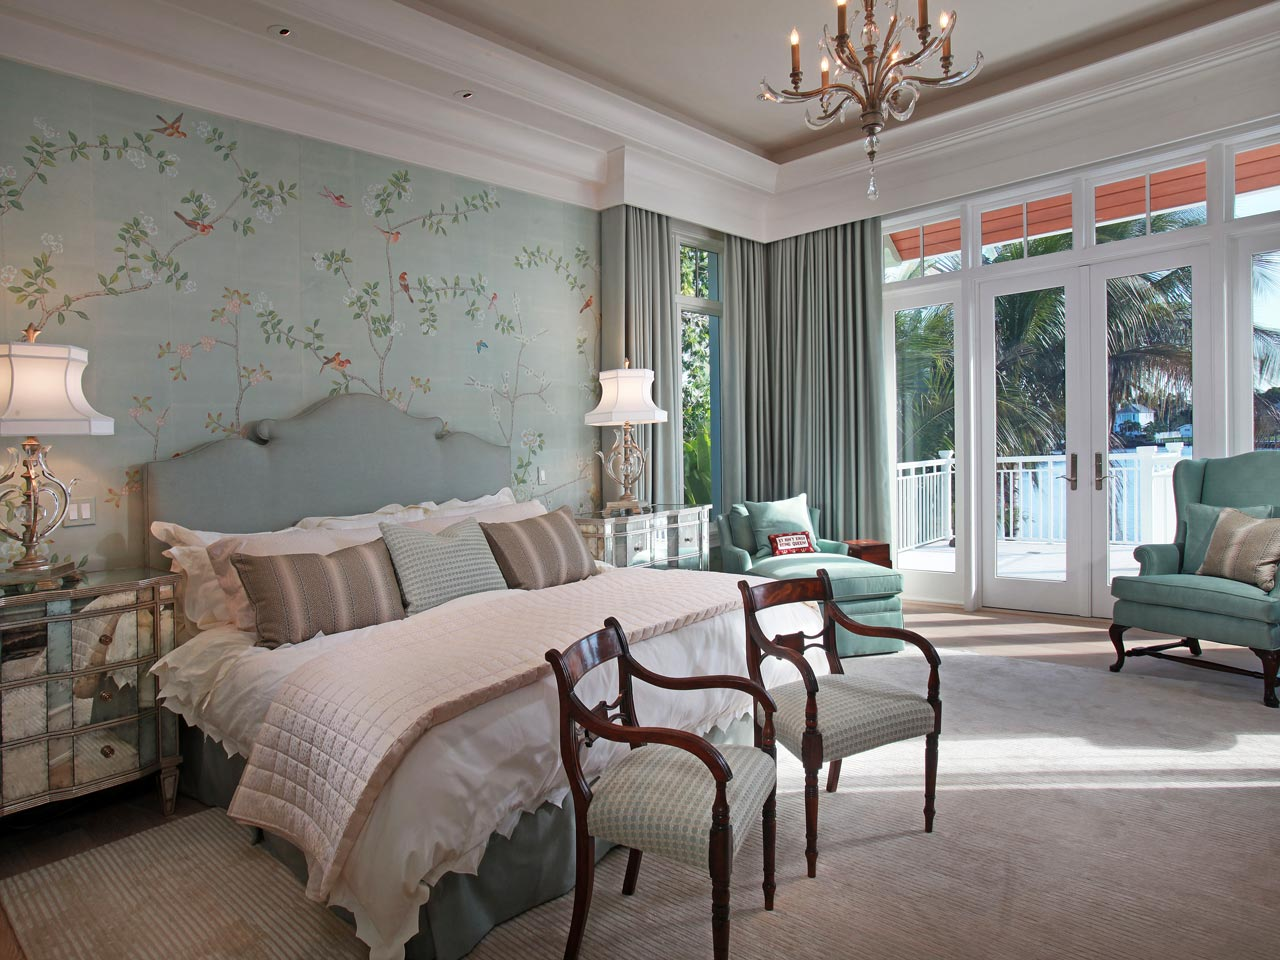 20 Elegant Small Master Bedroom Ideas Decorating Images Of Home Design Ideas